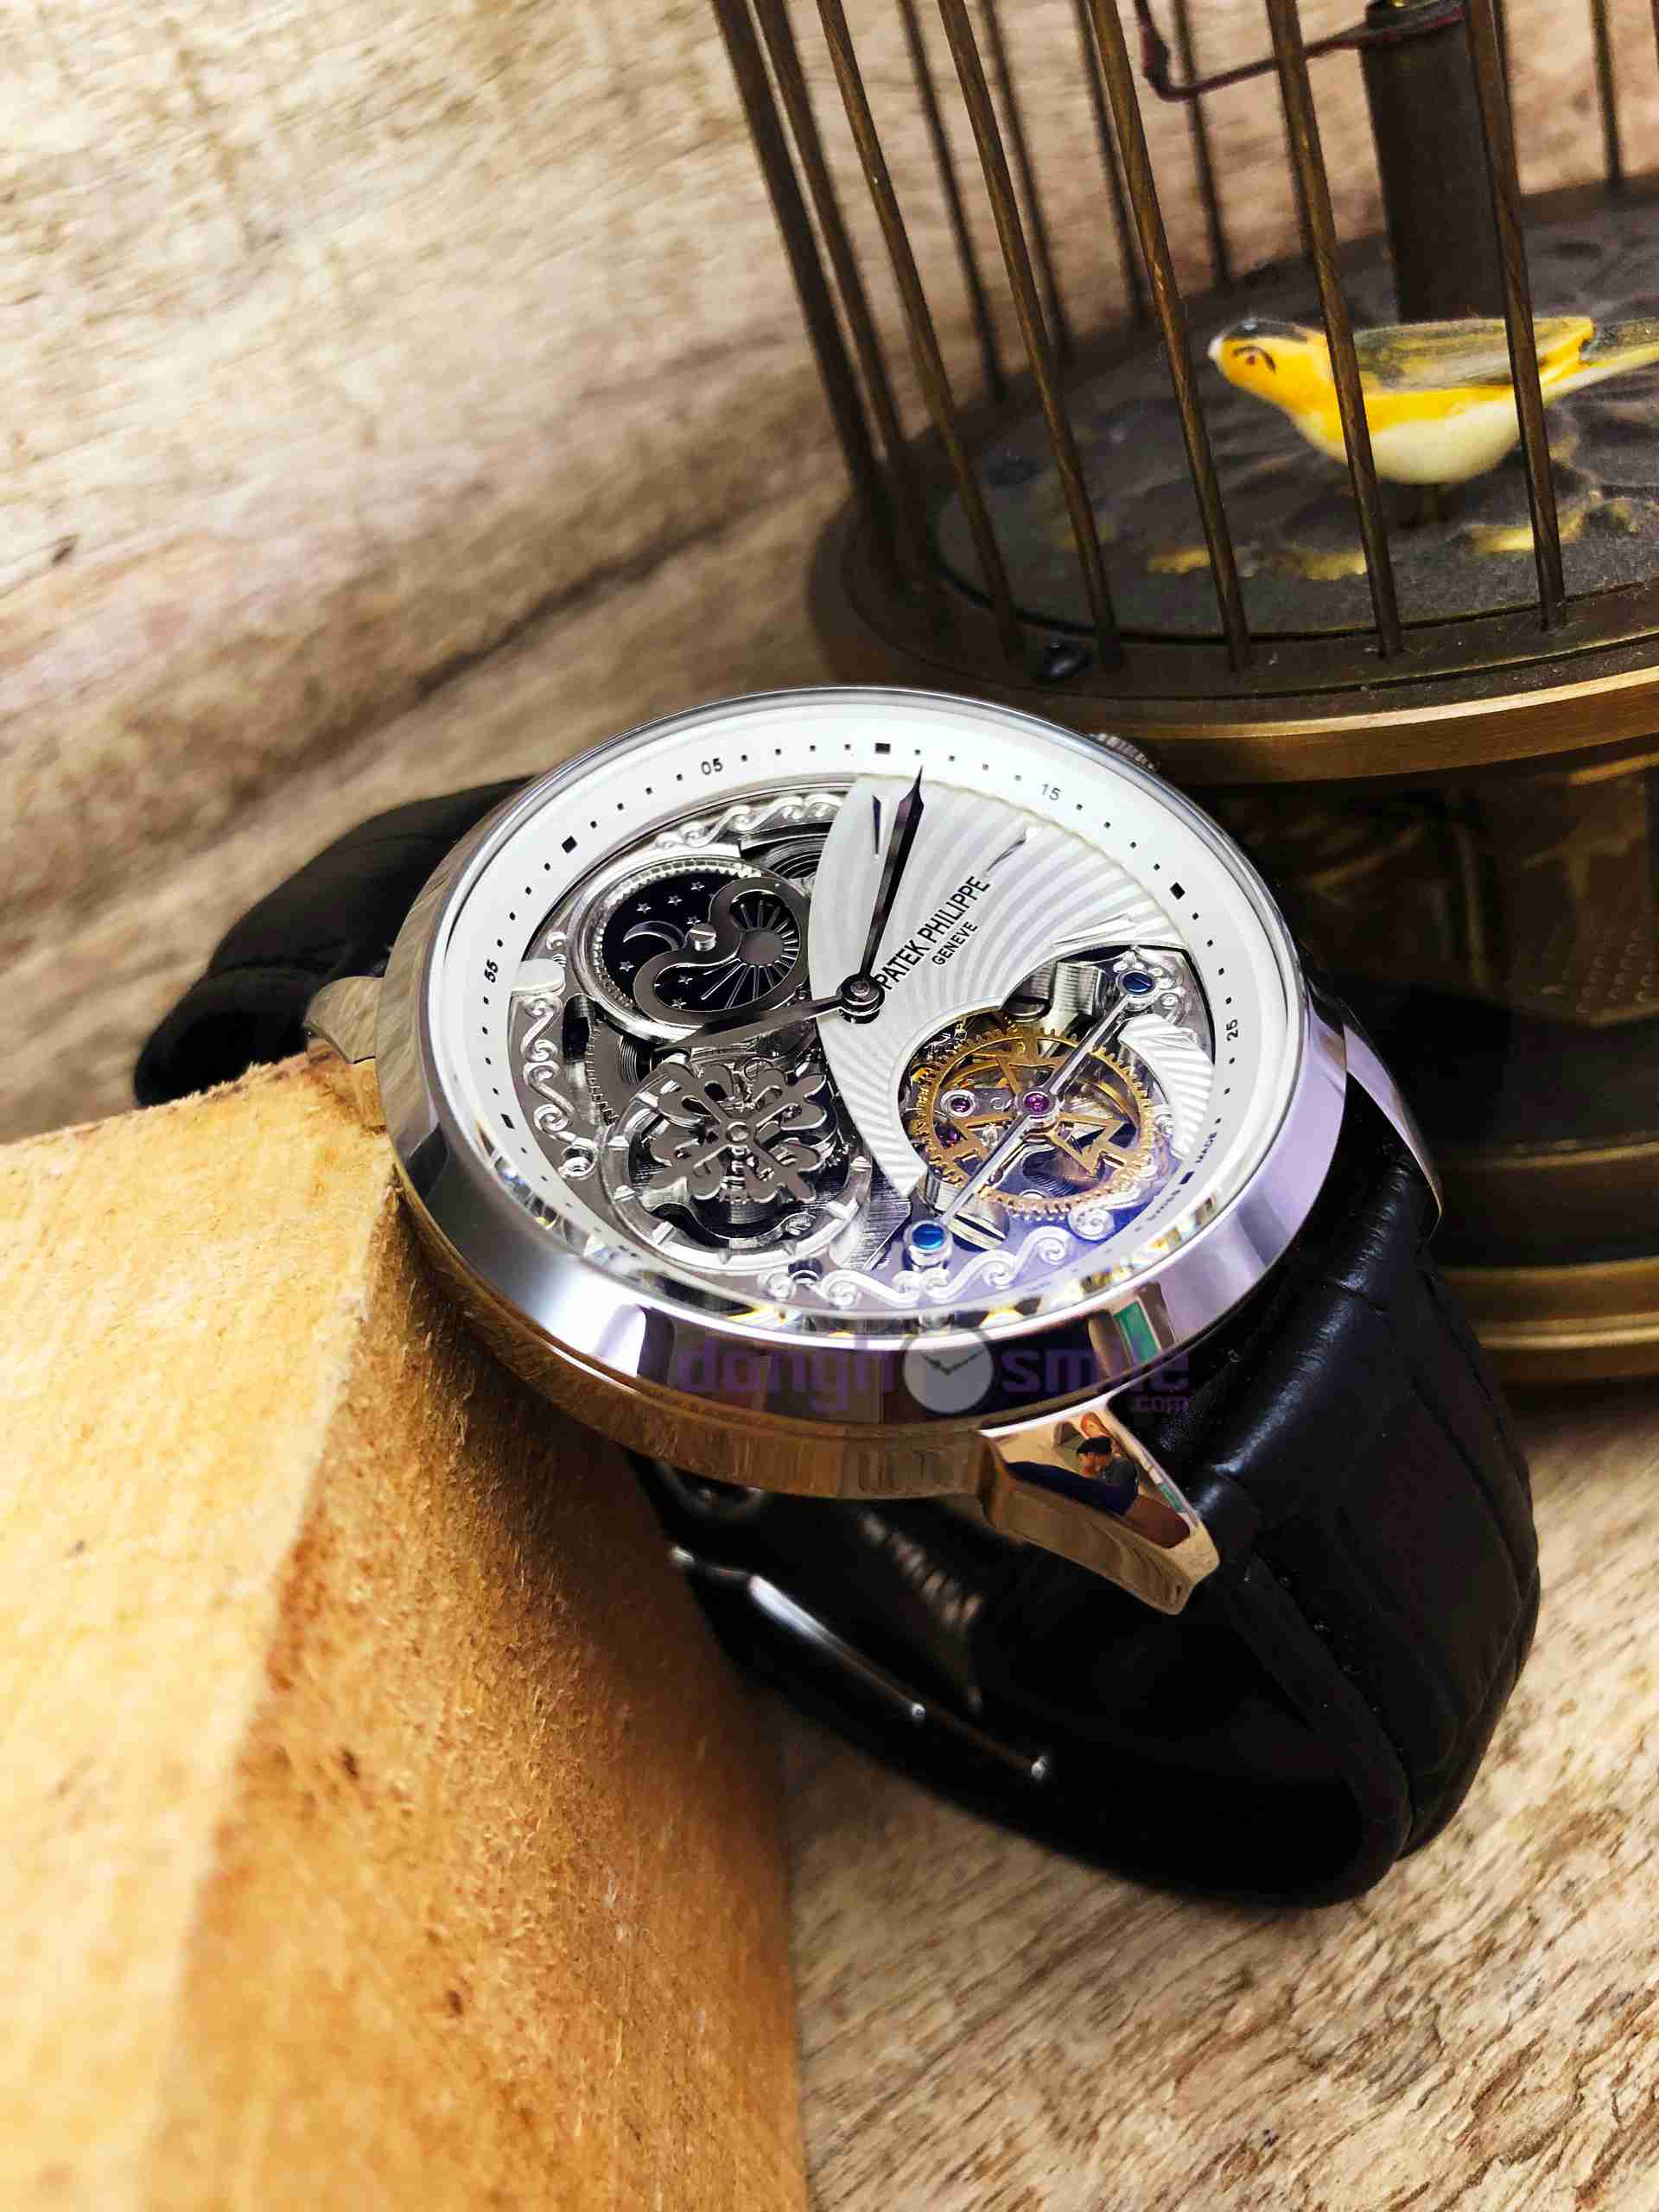 dong-ho-patek-philippe-geneve-gia-tot-a-pp114-7